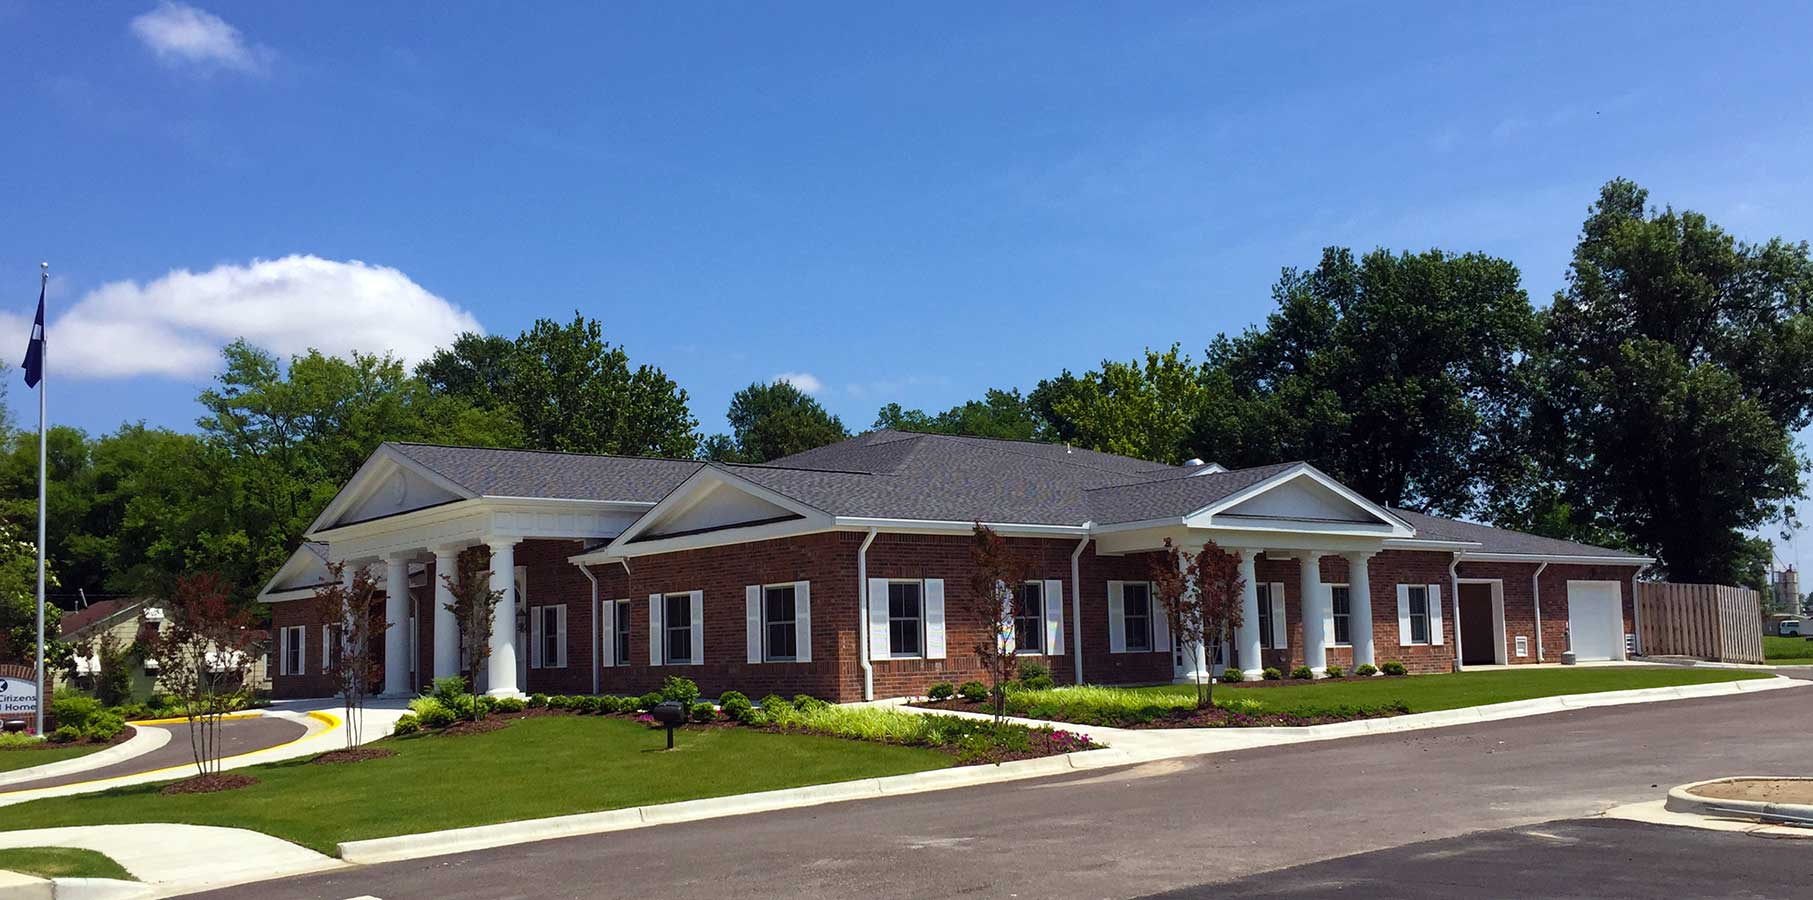 Roller Funeral Homes-West Memphis